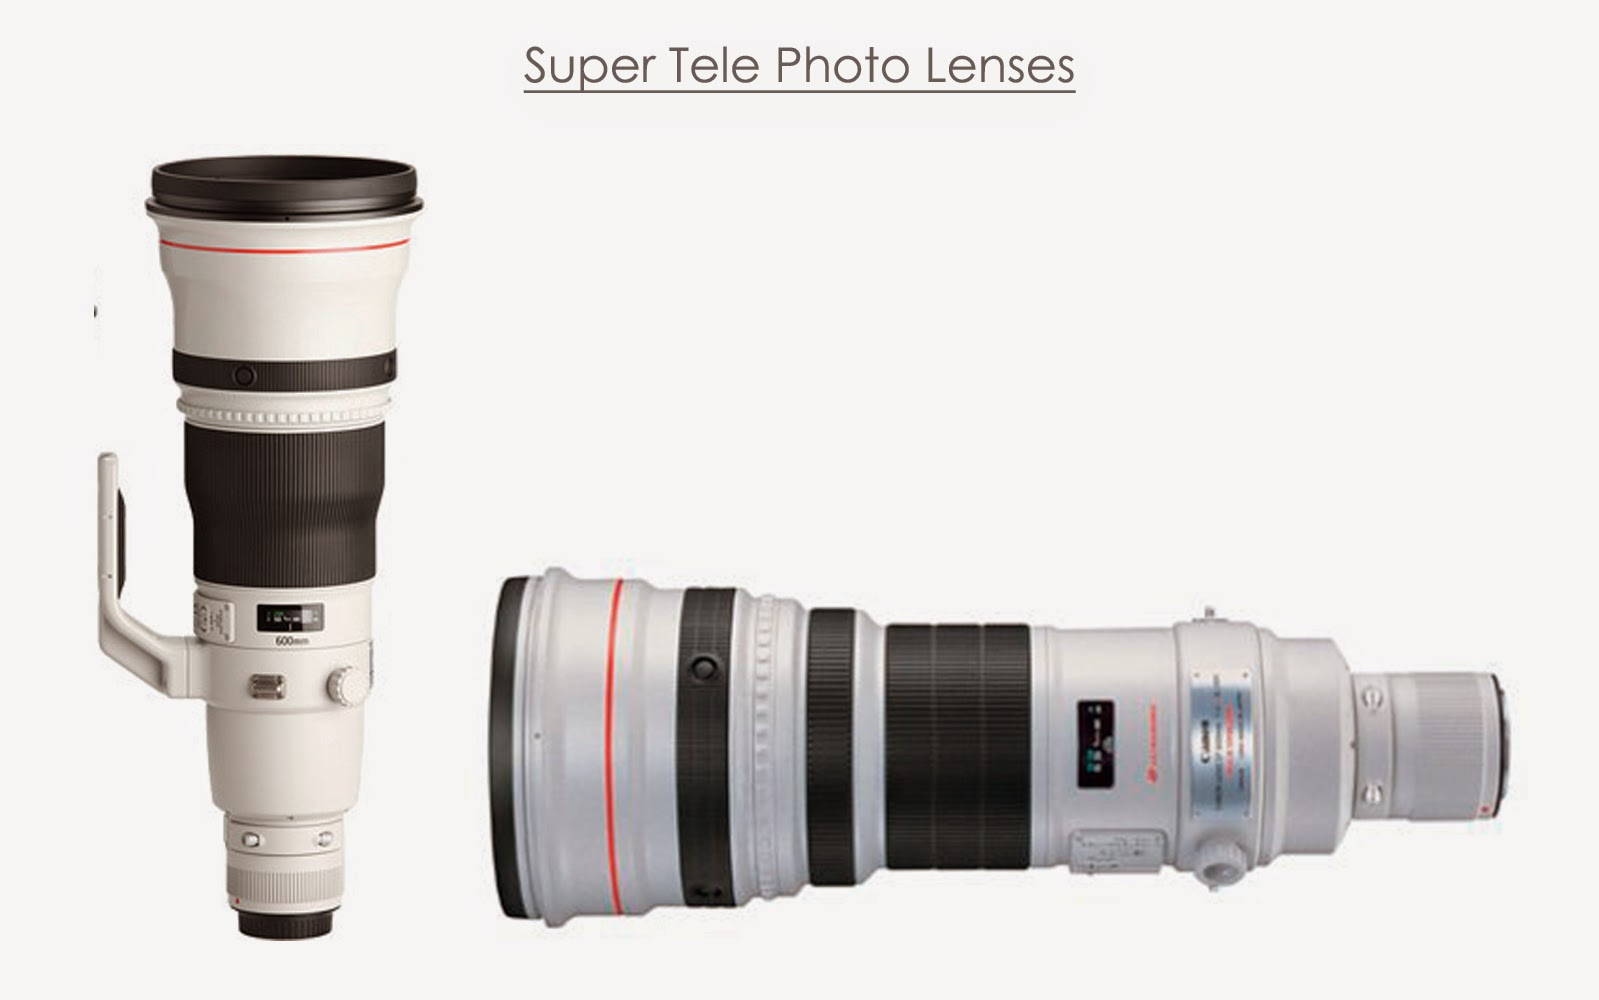 Super Tele Photo Lenses